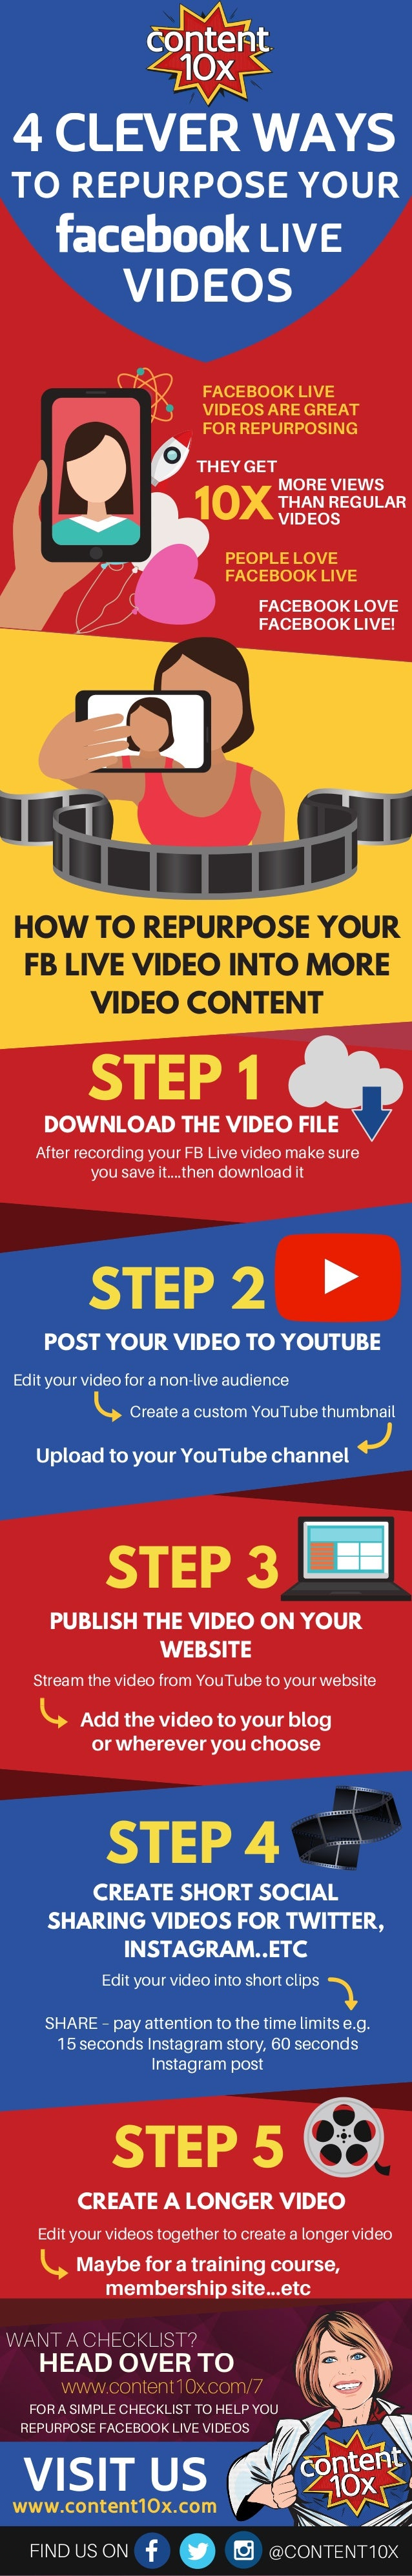 4 CLEVER WAYS TO REPURPOSE YOUR LIVE VIDEOS FACEBOOK LIVE VIDEOS ARE GREAT FOR REPURPOSING THEY GET PEOPLE LOVE FACEBOOK L...